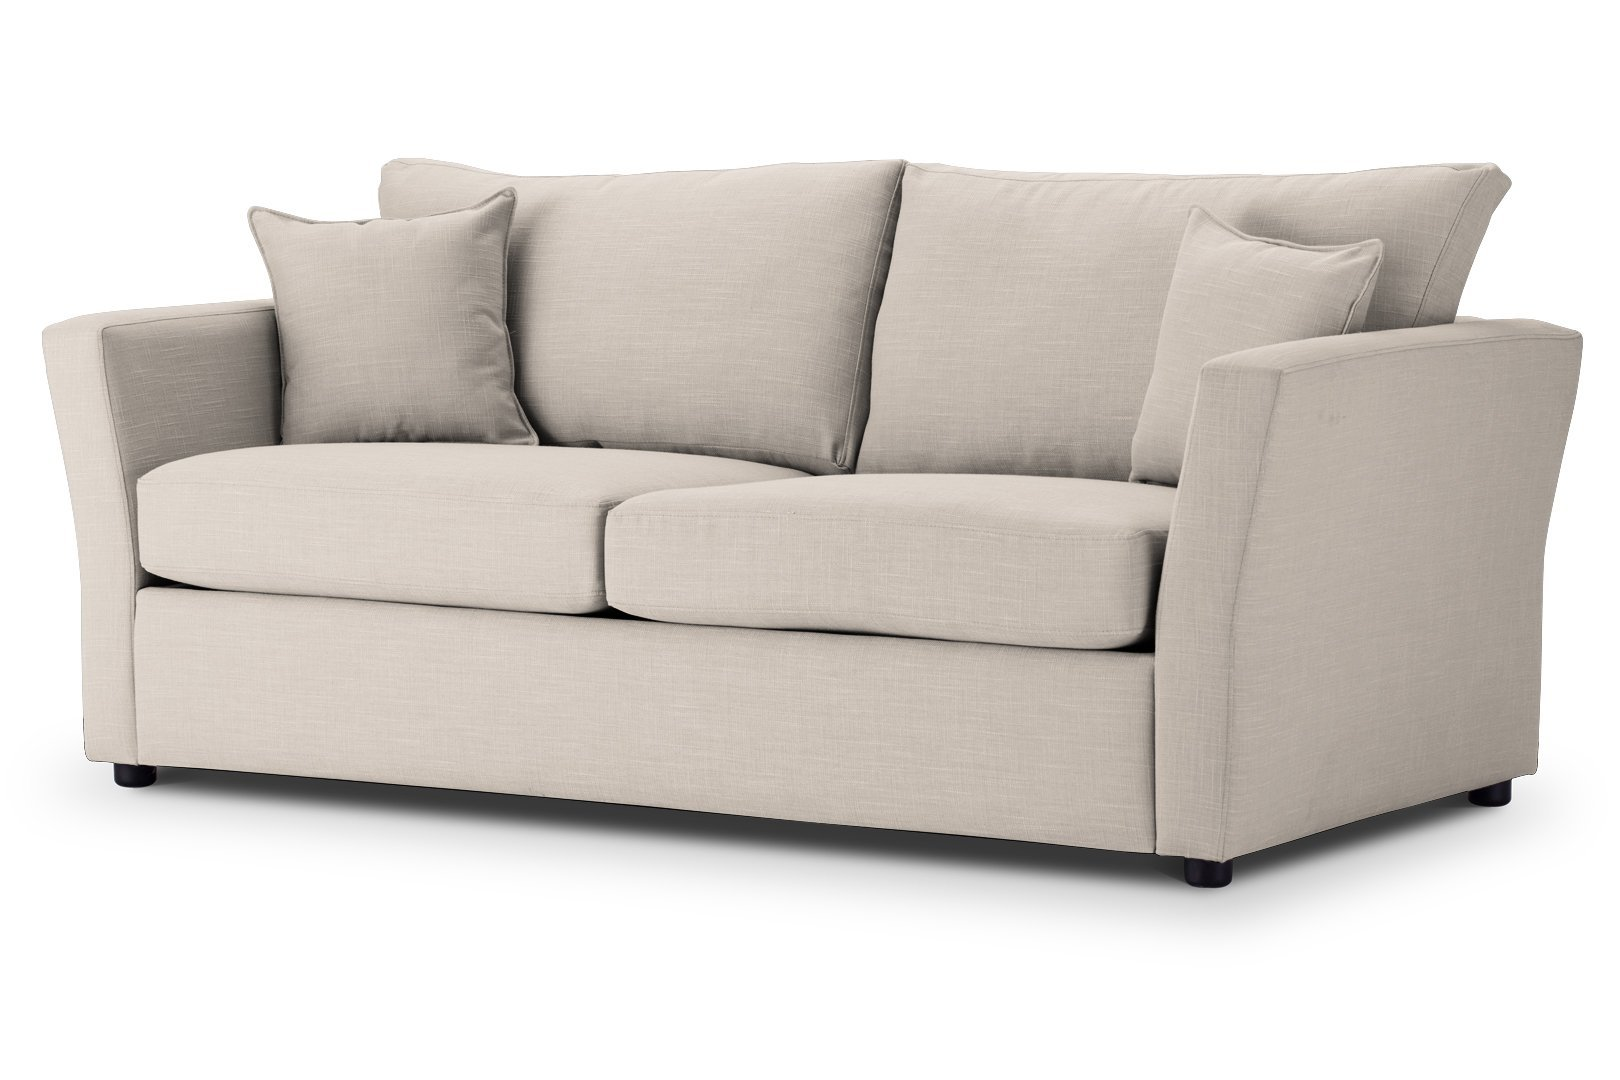 Sofa Bed Flared arms in Emporio Cream Fabric